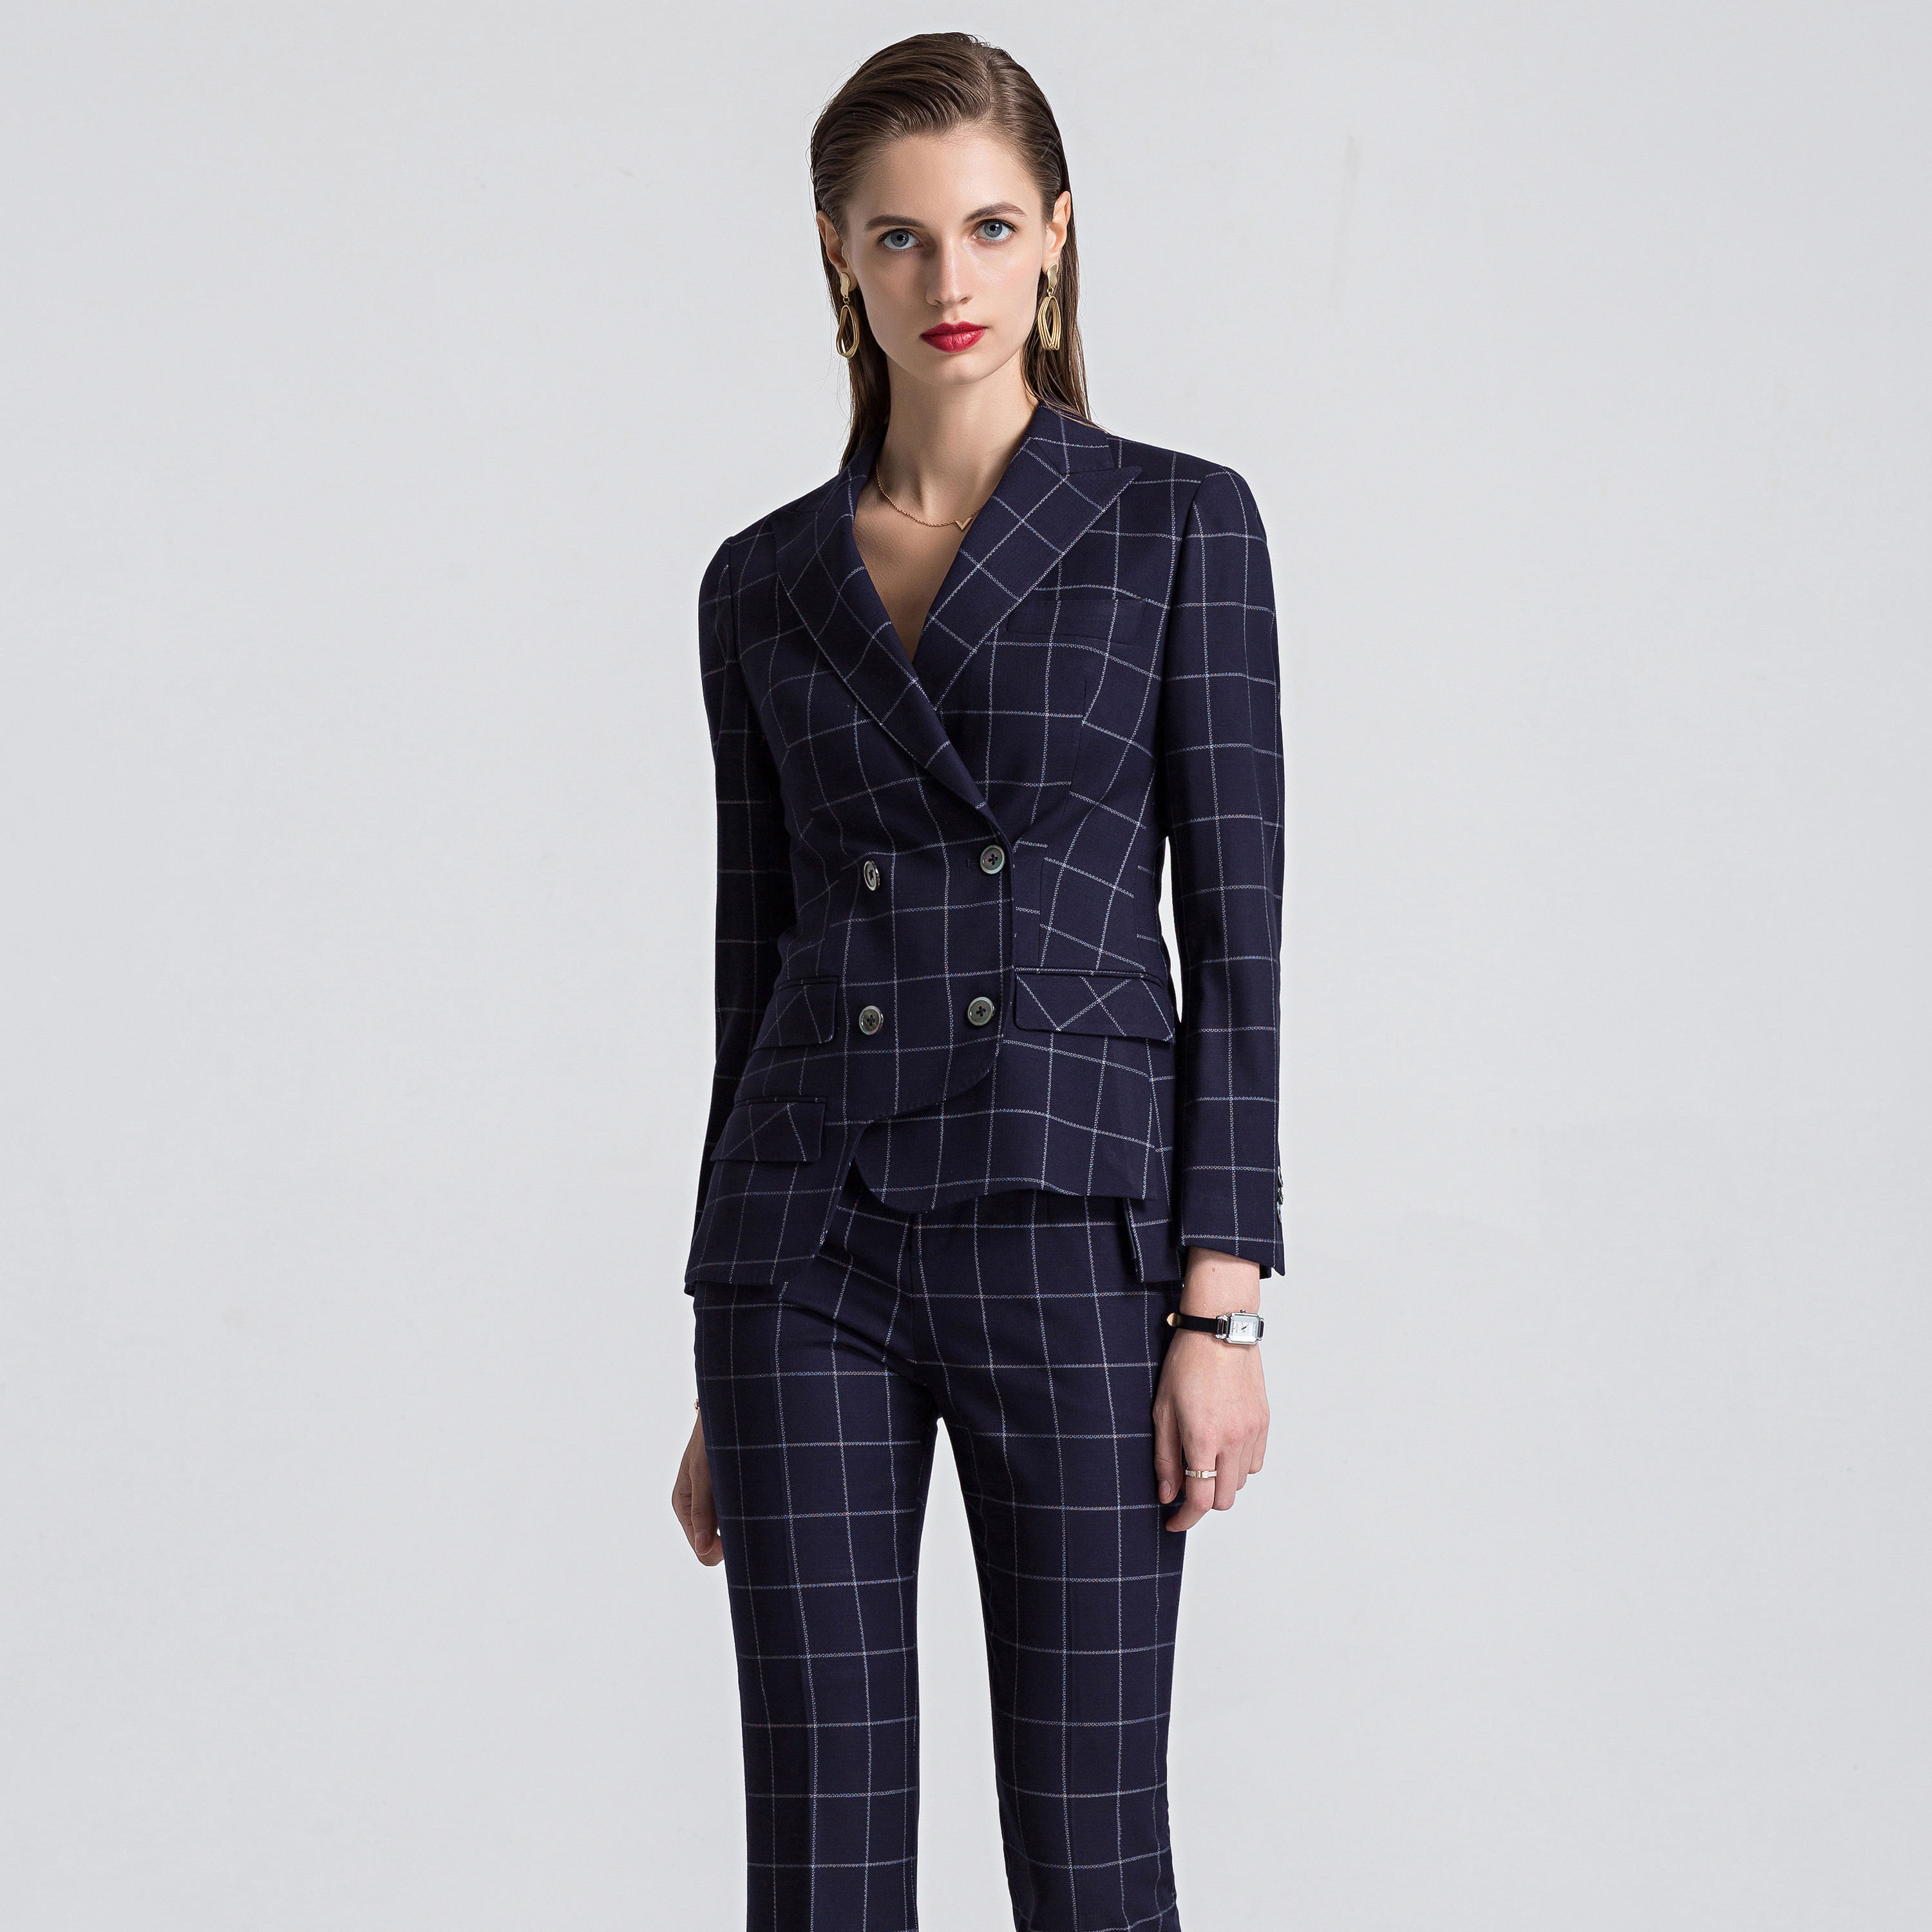 High quality Plaid Pattern type Double Breasted Dark blue color pants suit